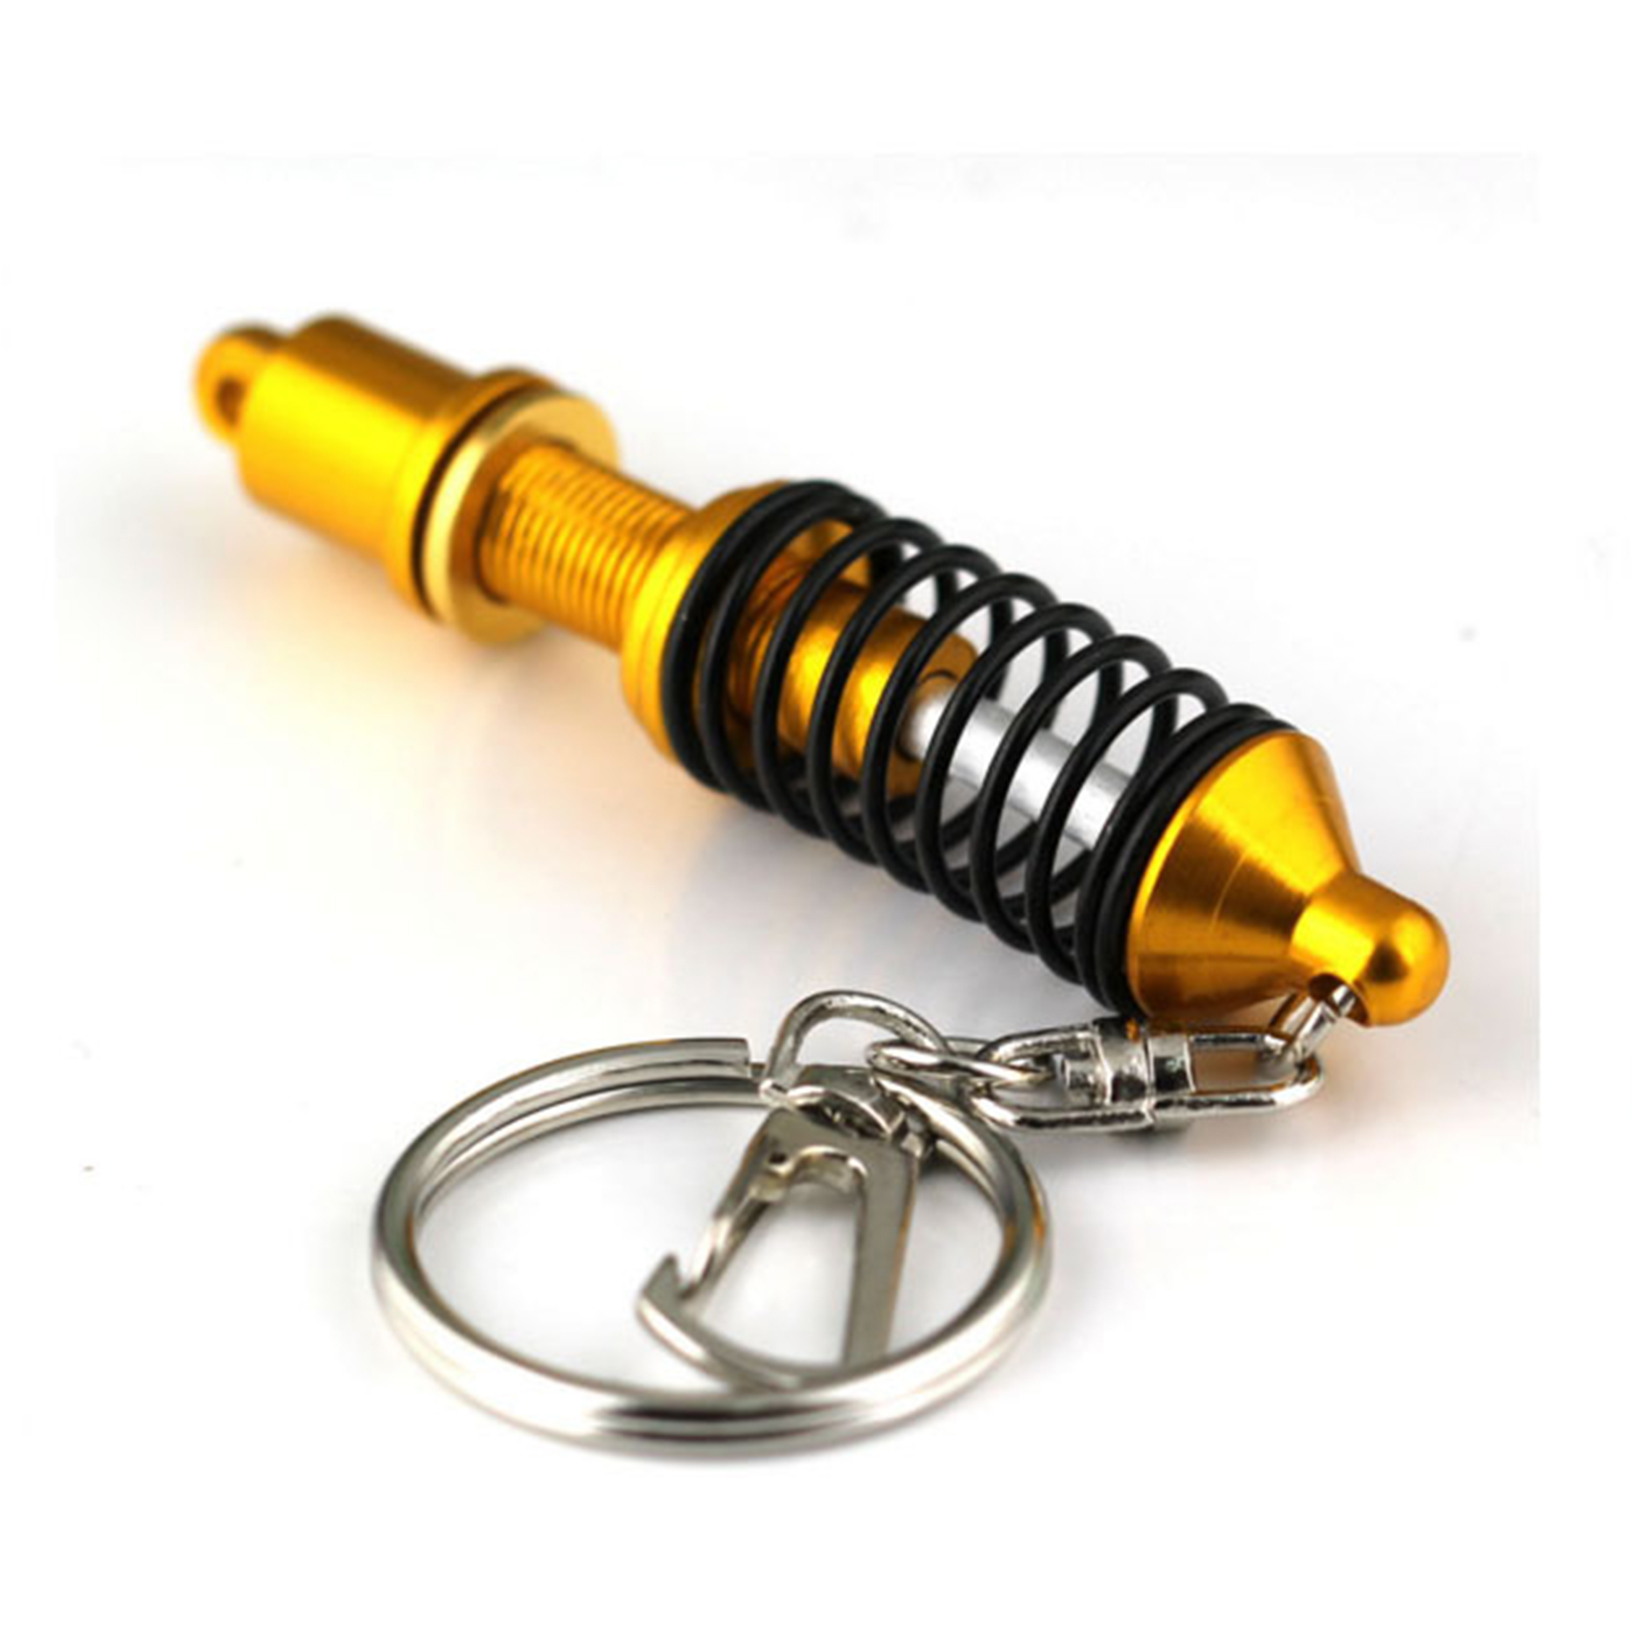 Adjustable Keychain Spring Car Part Shock Absorber Keyring Alloy Gift